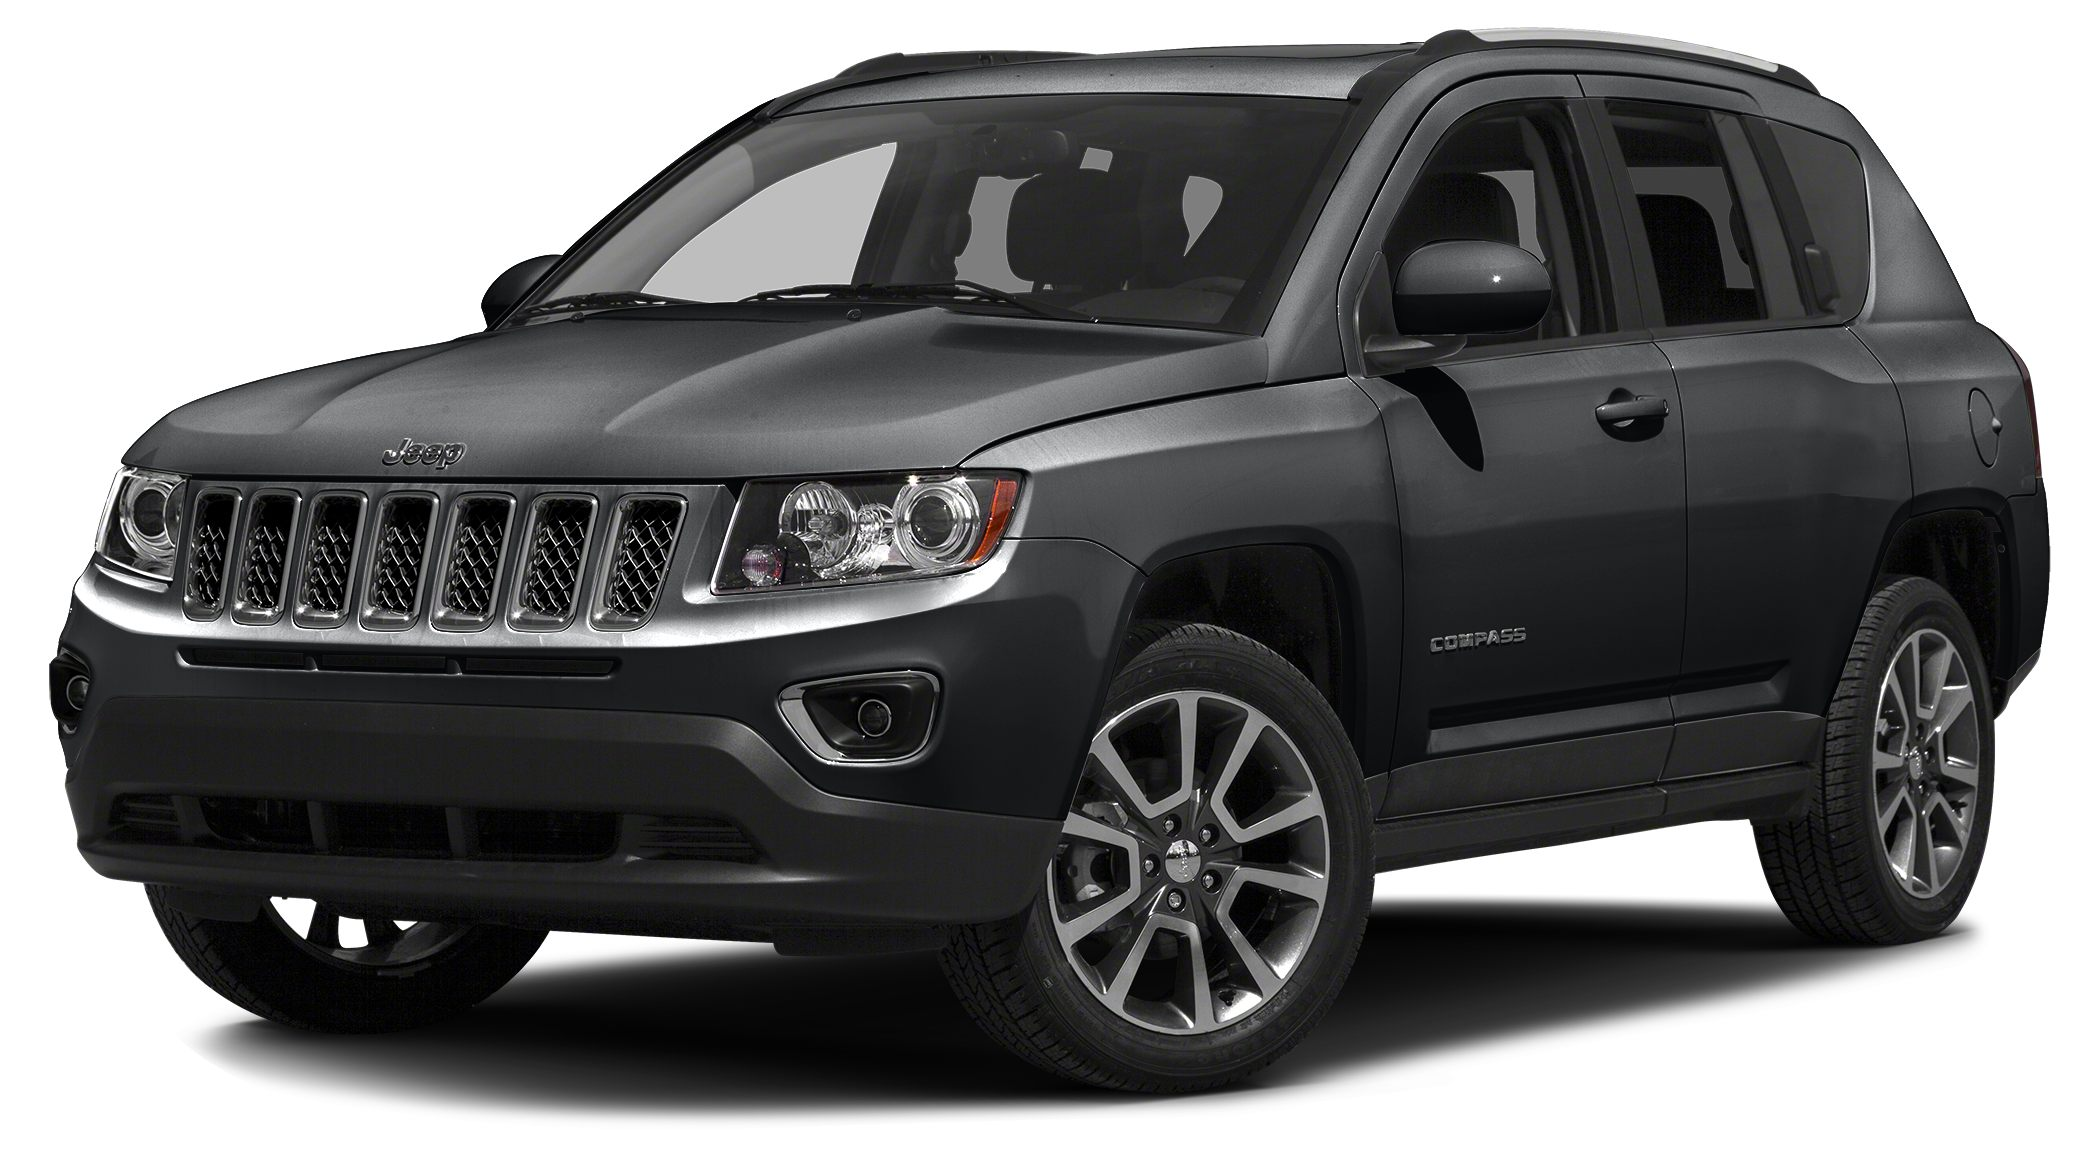 2016 Jeep Compass Sport At Advantage Chrysler you know you are getting a safe and dependable vehic